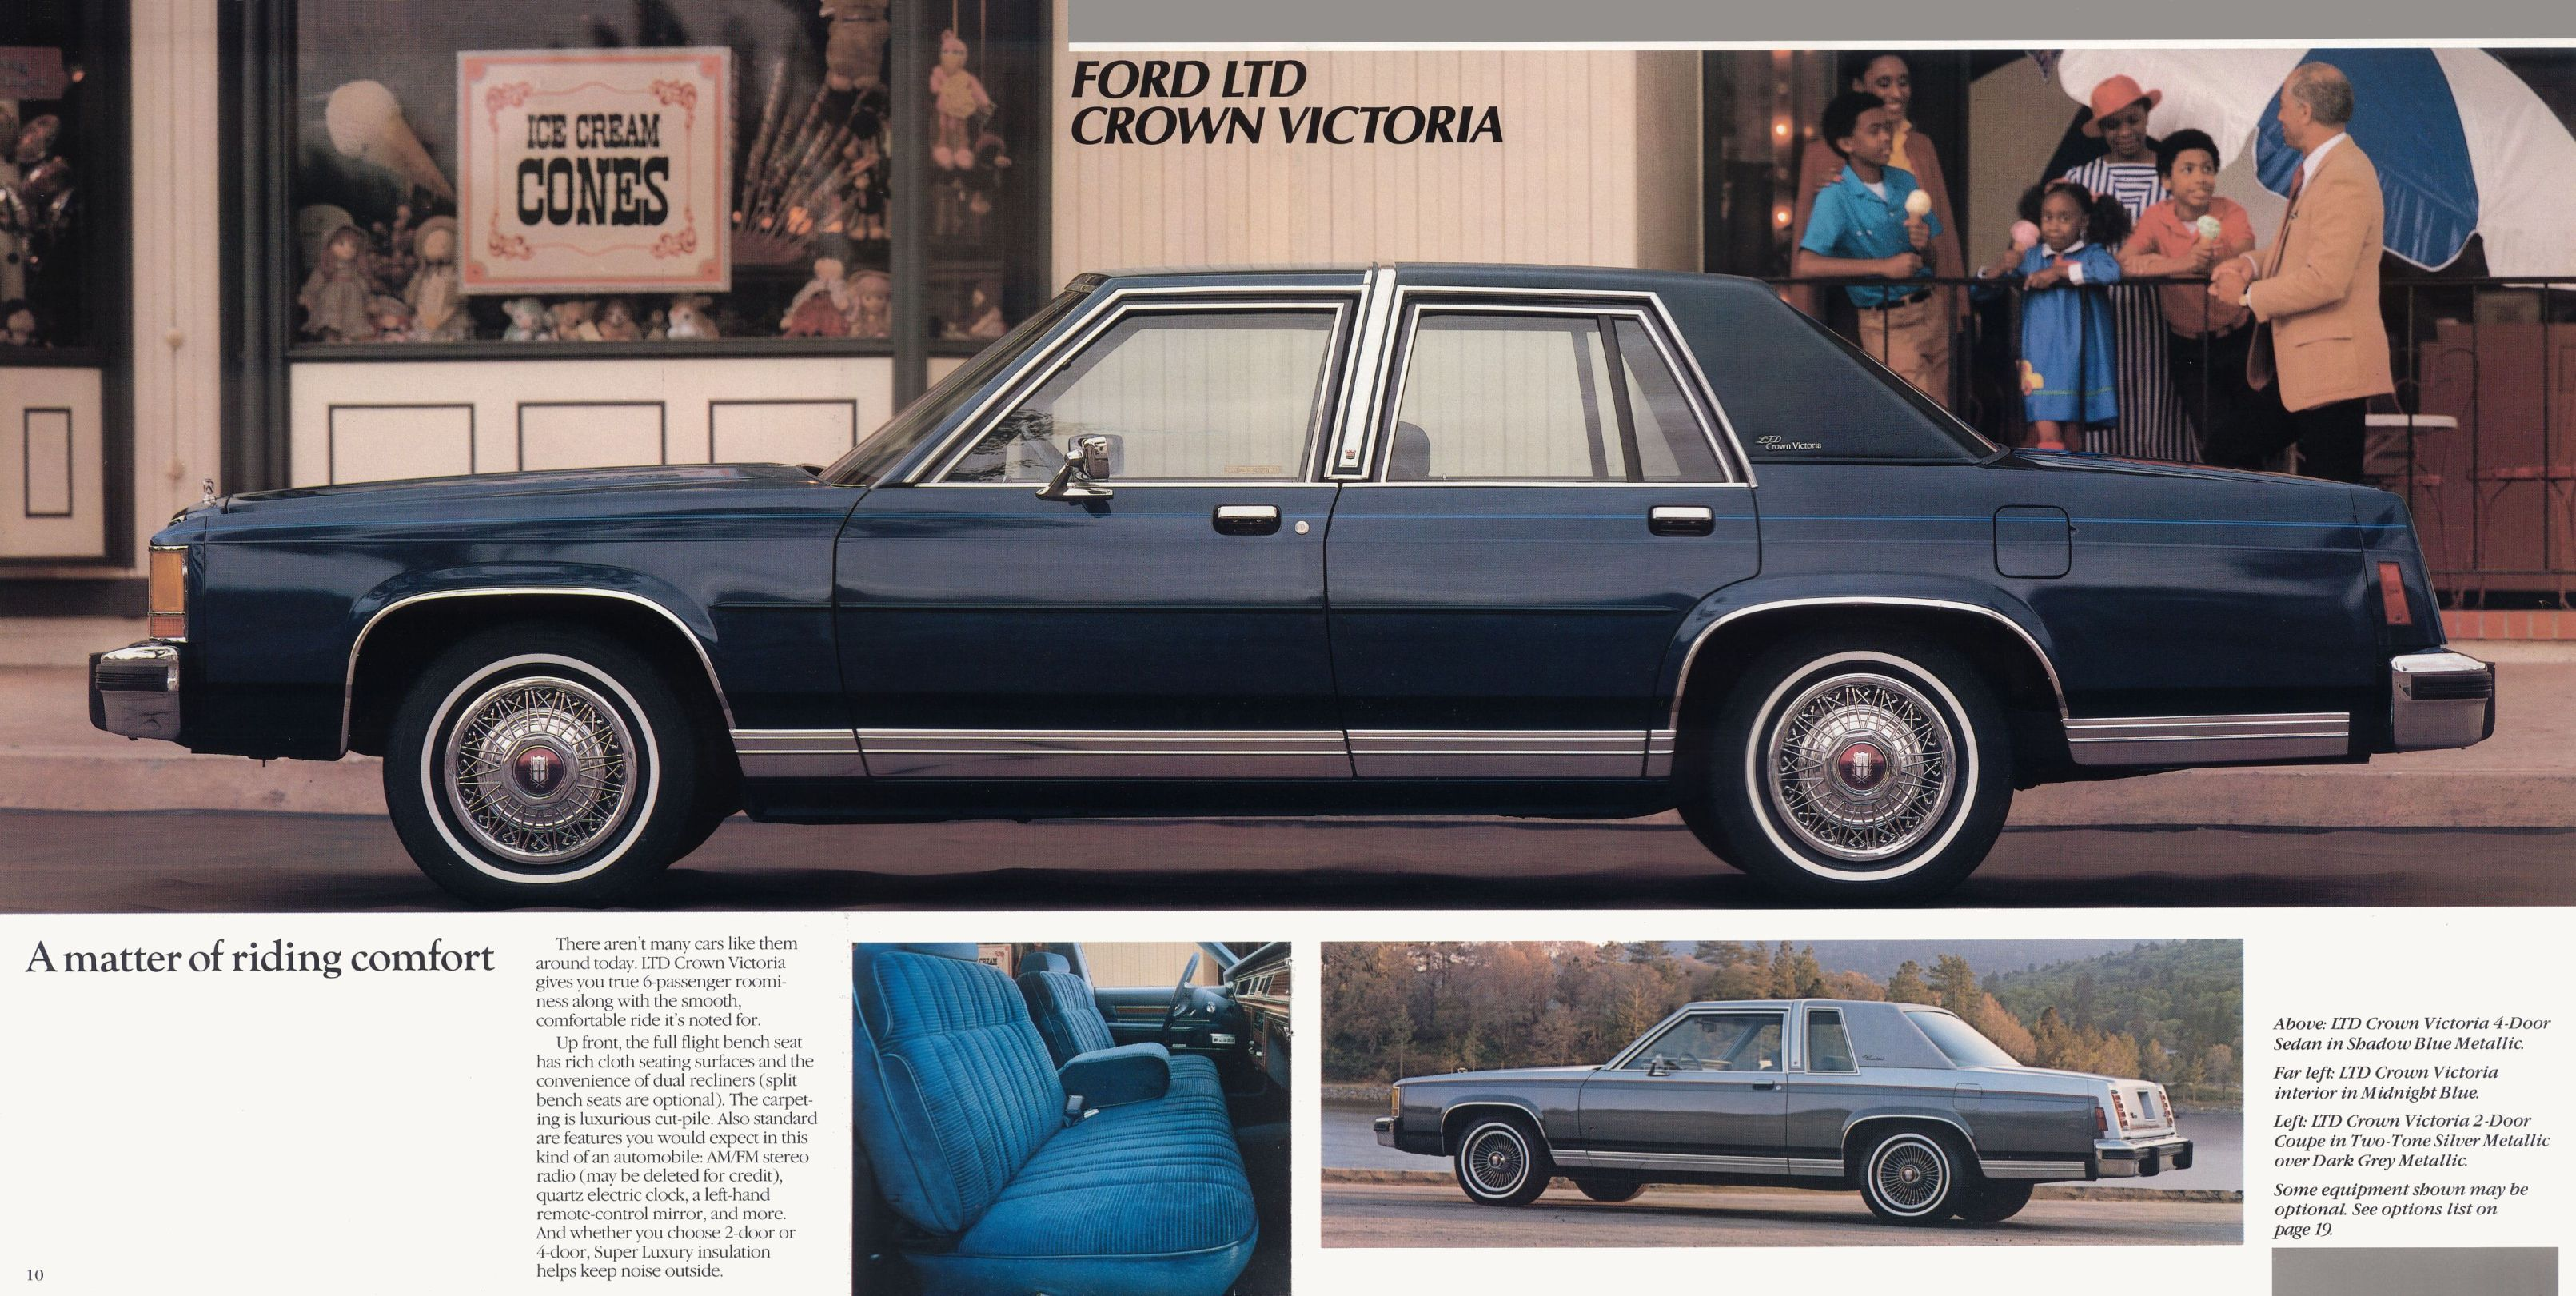 The Most 80s Looking Car Page 7 Grassroots Motorsports Forum Ford Ltd Ford Ford Motor Company